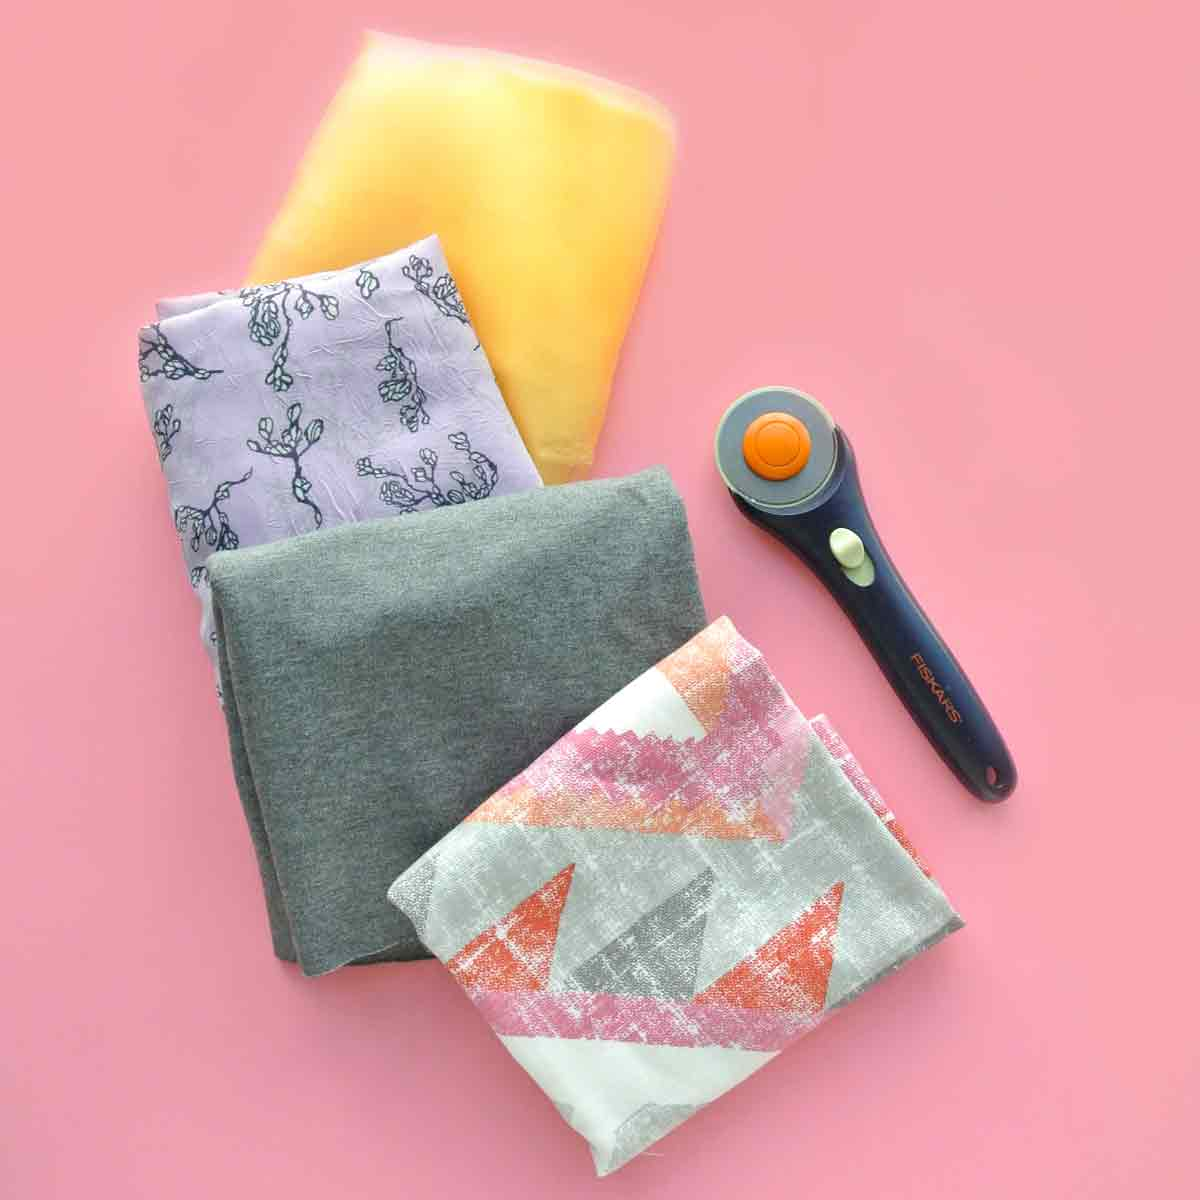 Rotary Cutter Vs Scissors. Shows Rotary cutter with 4 types of fabrics that it's good for cutting (tulle, chiffon, knit, cotton)